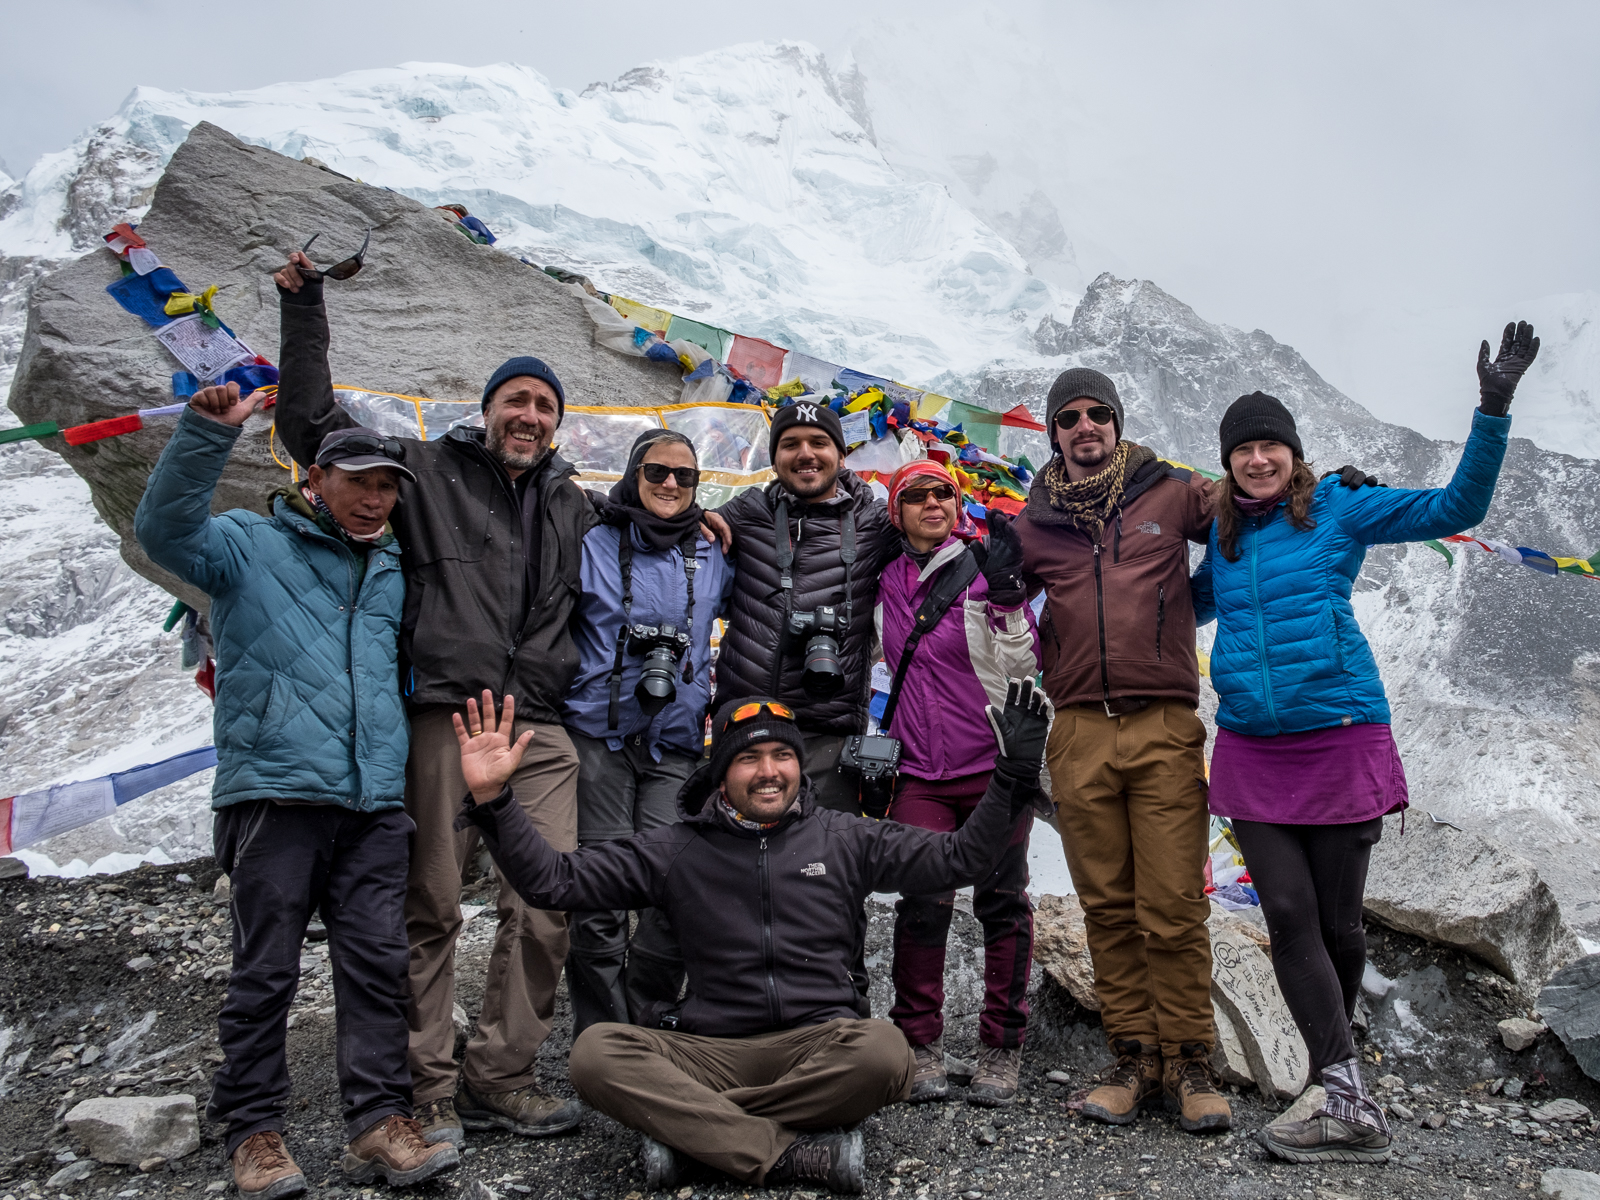 We did it! Wahoo for the Camera Voyages Team! NYC represent, represent-sent!!